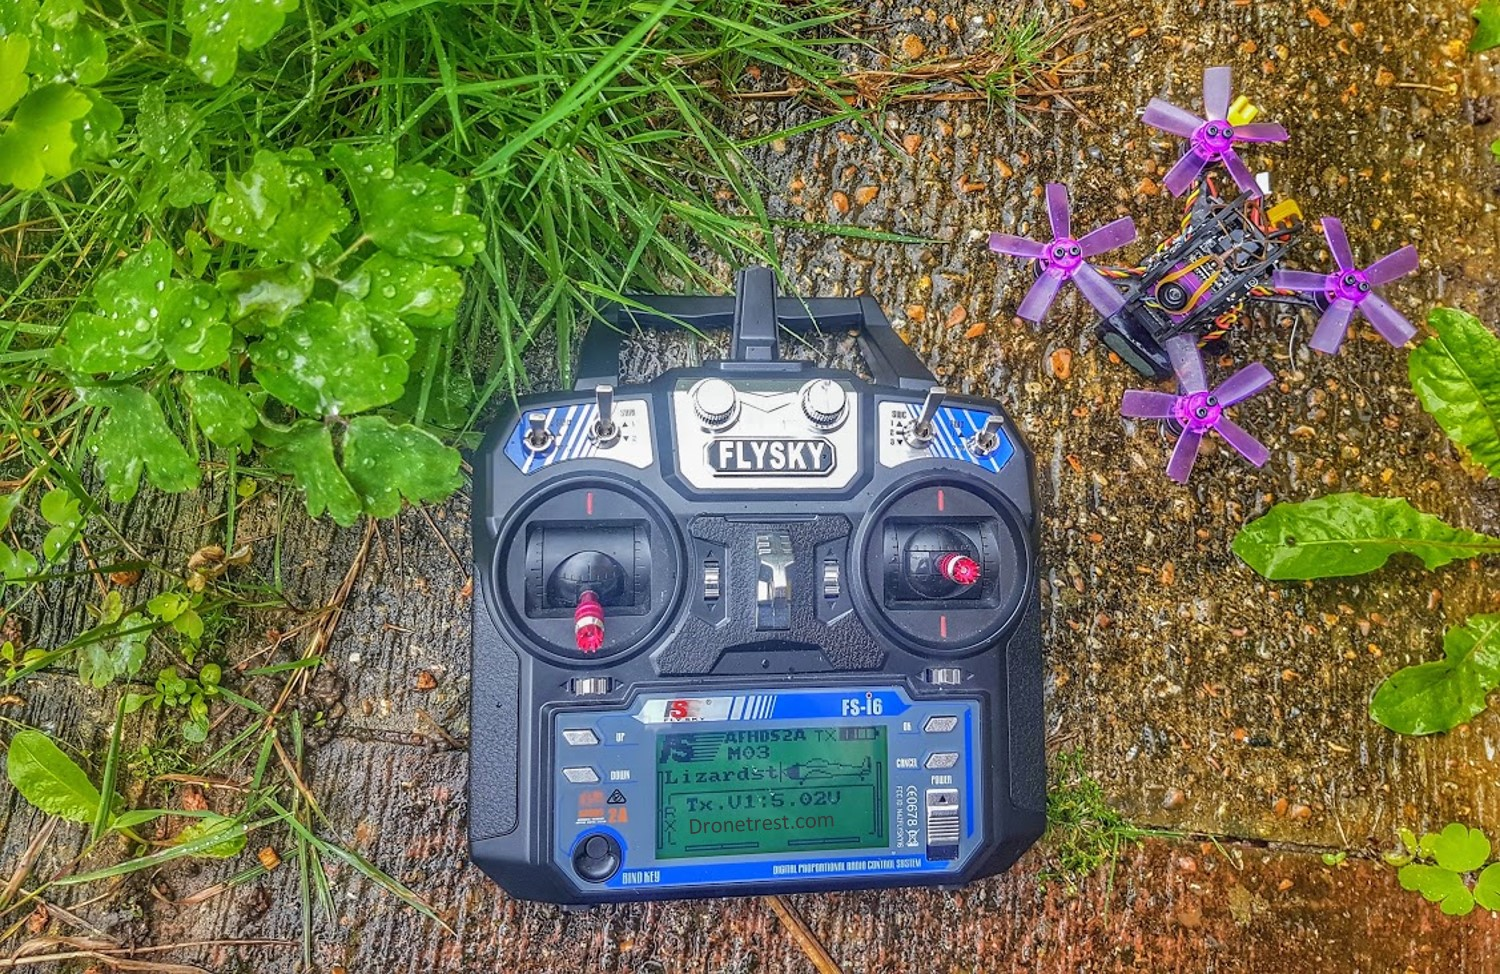 How To Bind And Setup Your Flysky Radio For A Quadcopter Drone